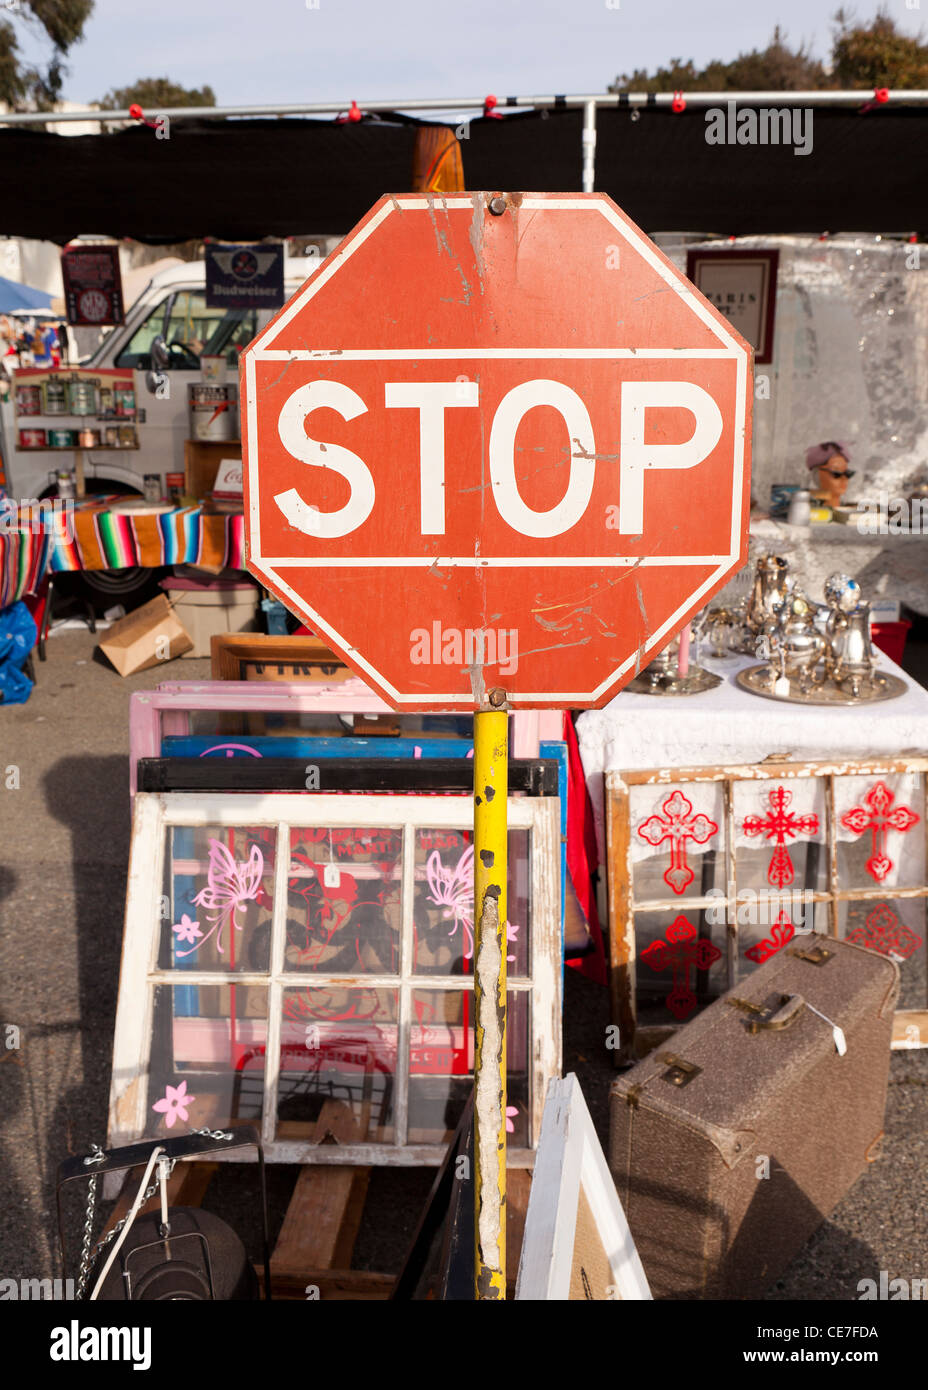 Antique stop sign - Stock Image